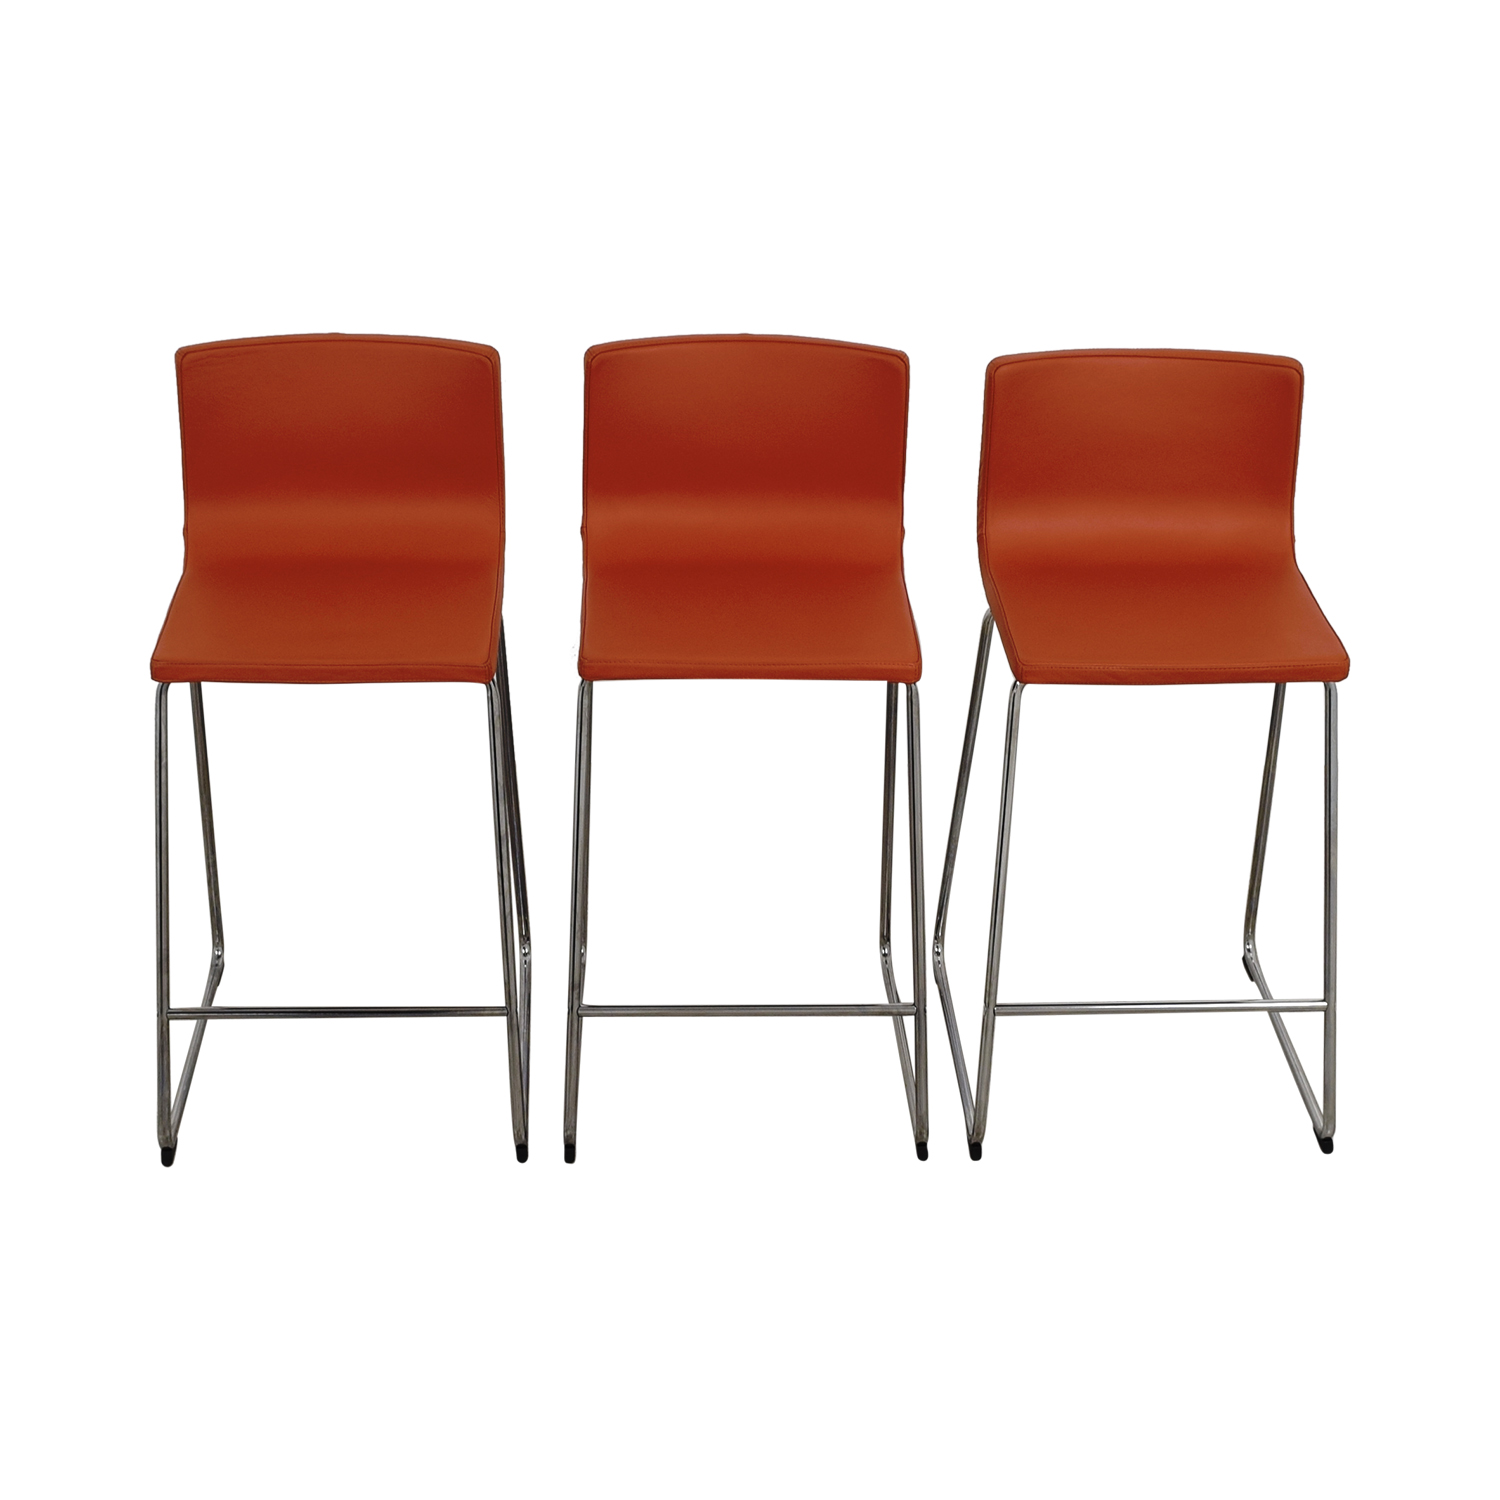 86 off ikea ikea bernhard orange bar stools chairs. Black Bedroom Furniture Sets. Home Design Ideas